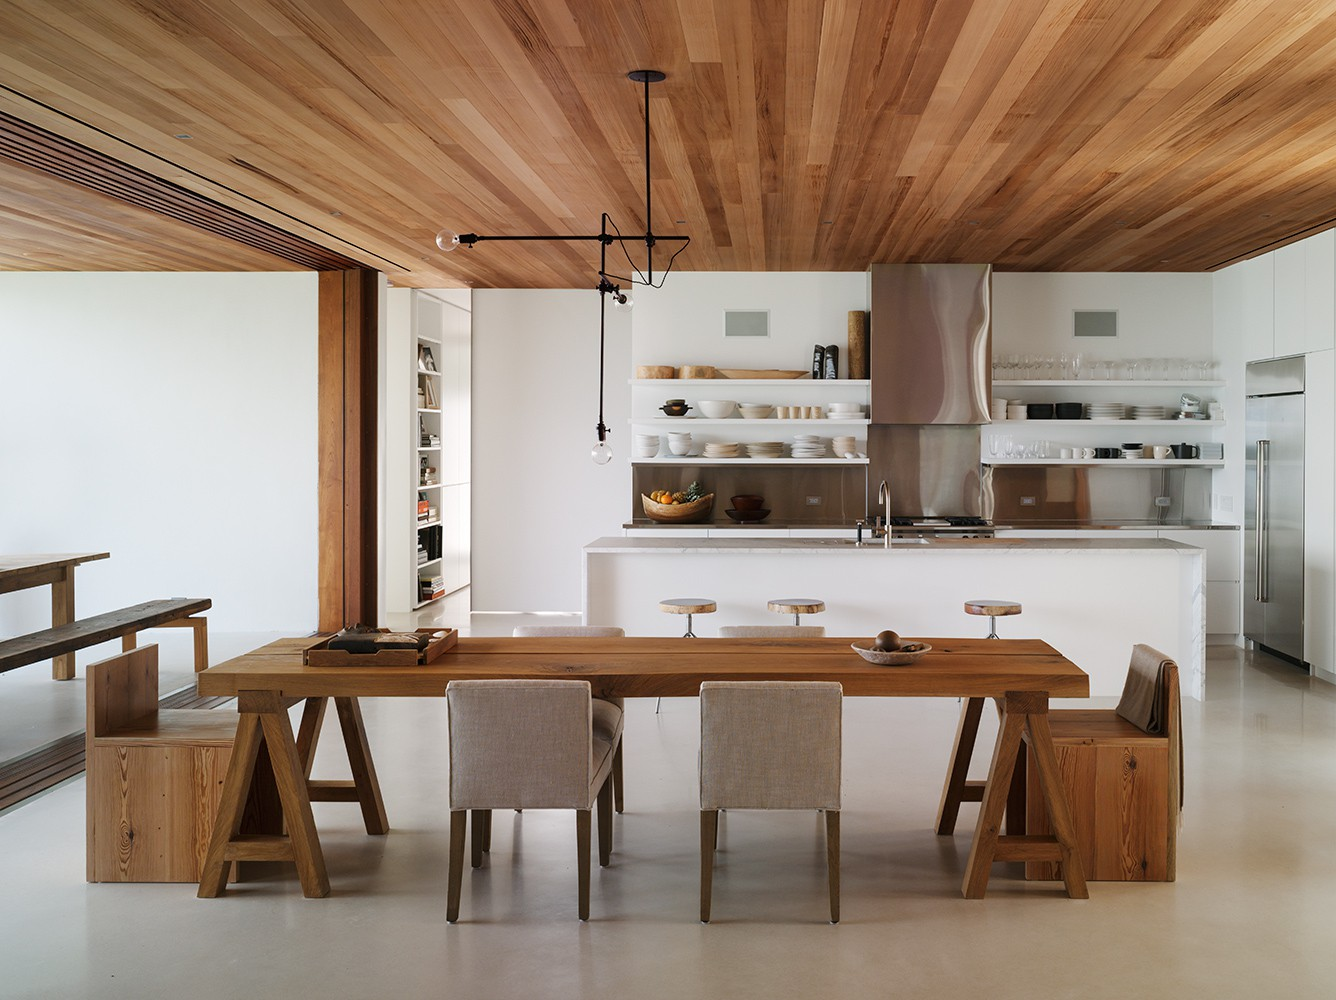 house-in-florida-8-1100-architect